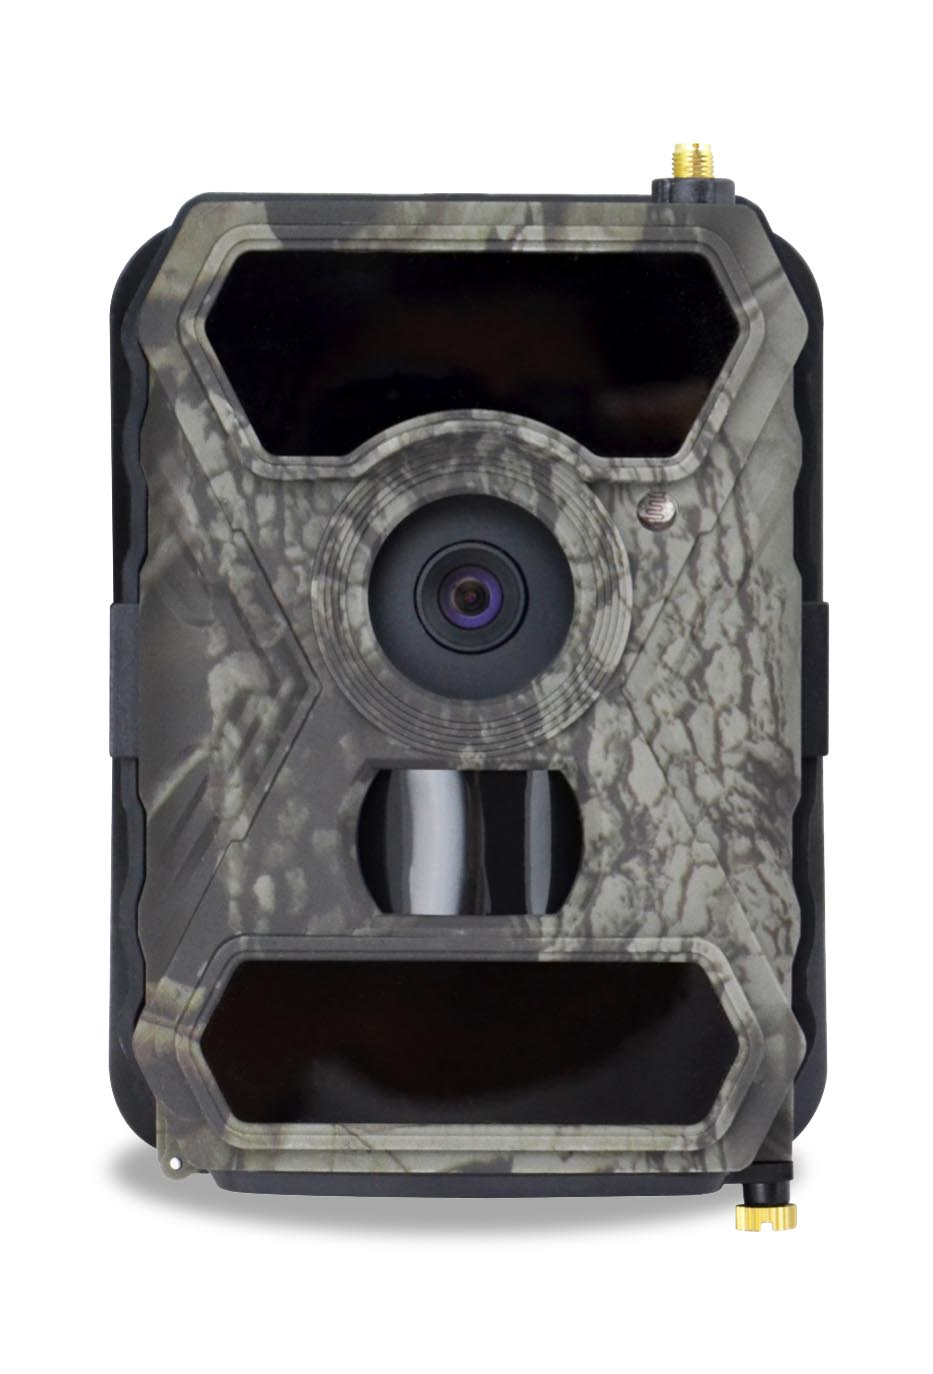 Recon Outdoors HS410 Trail Camera